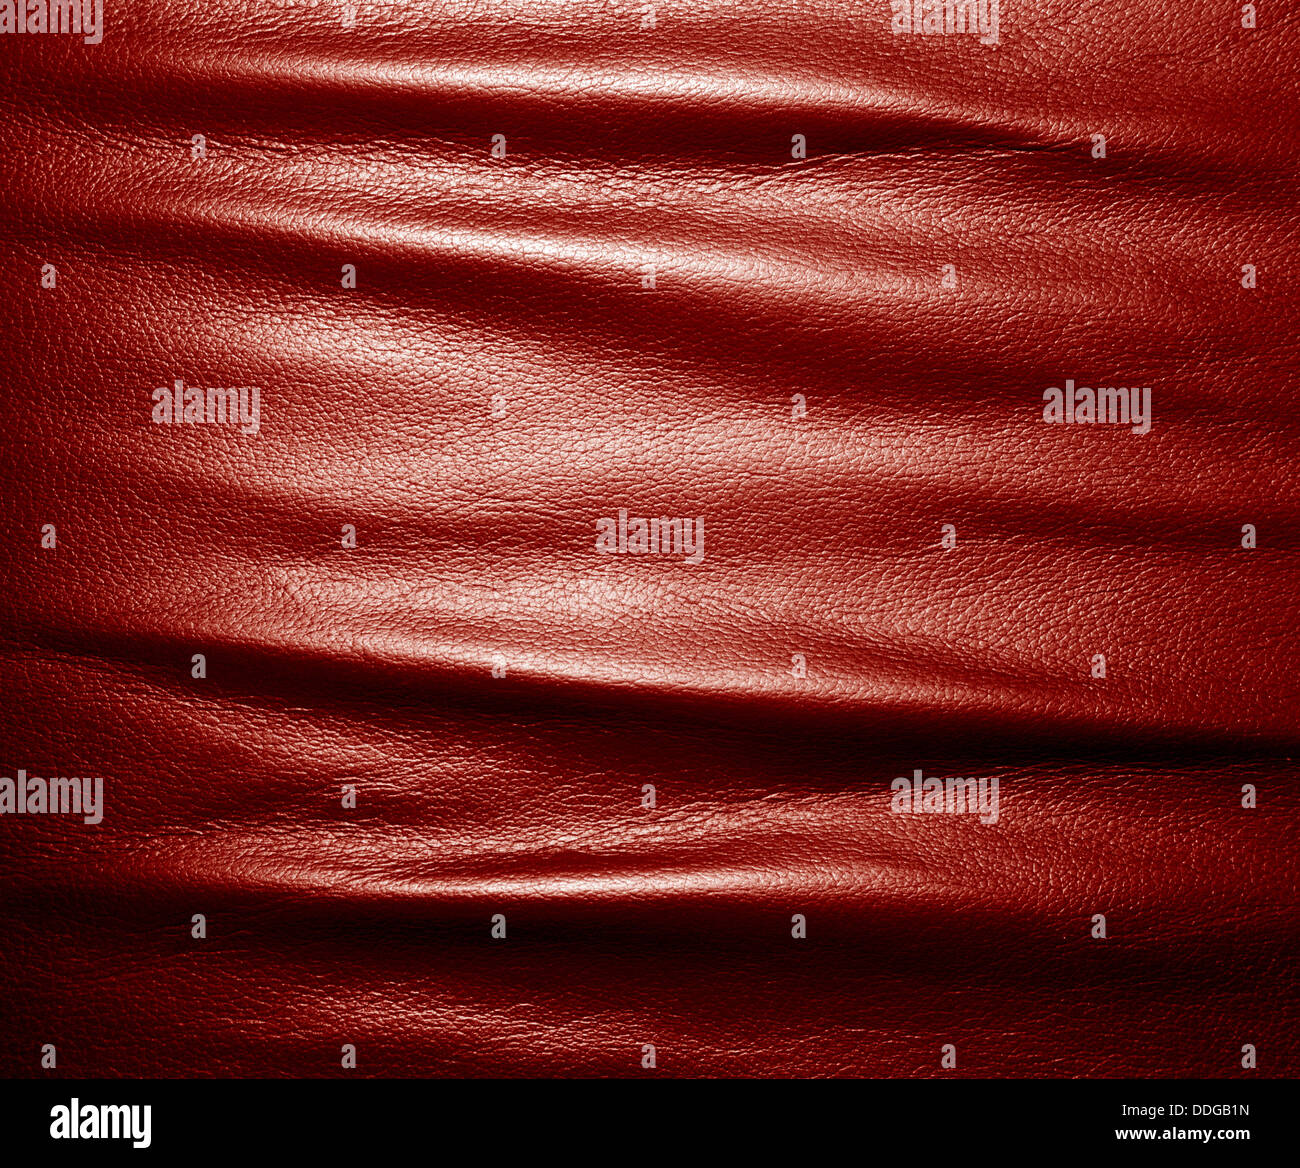 Soft wrinkled red leather texture background. - Stock Image